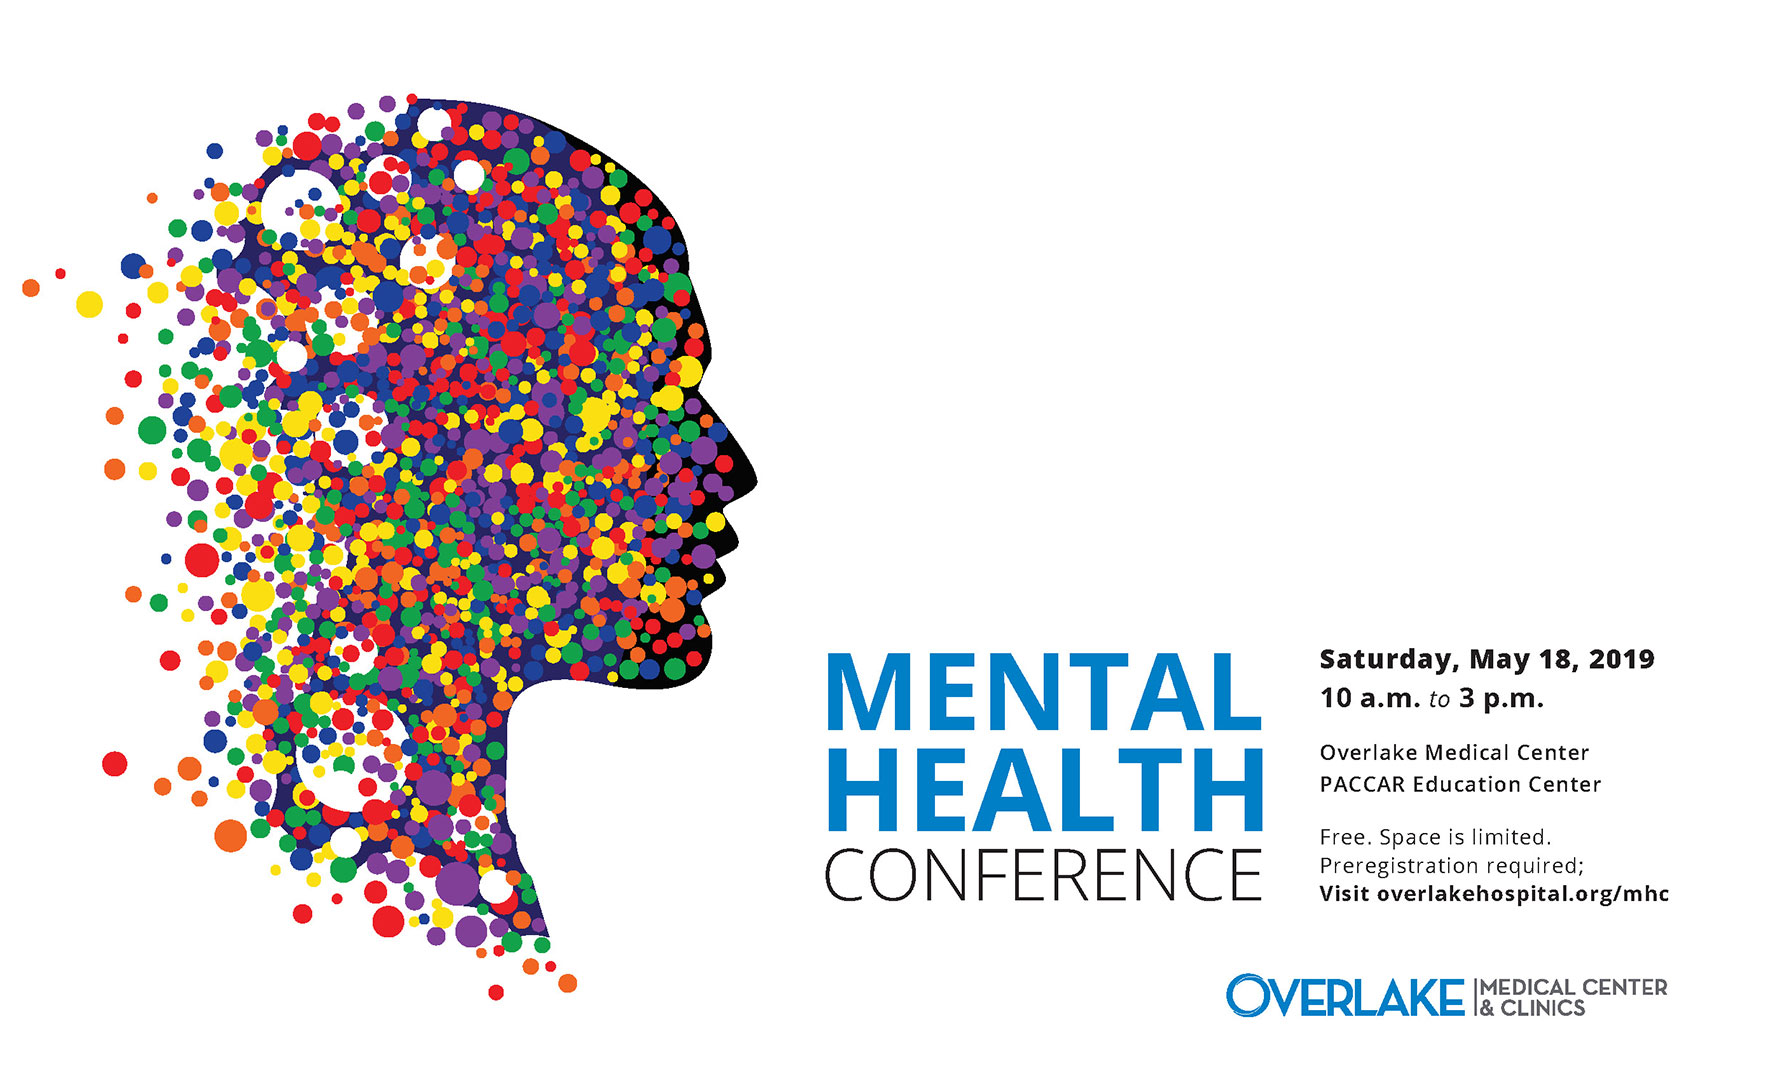 Mental Health Conference > Crisis Connections